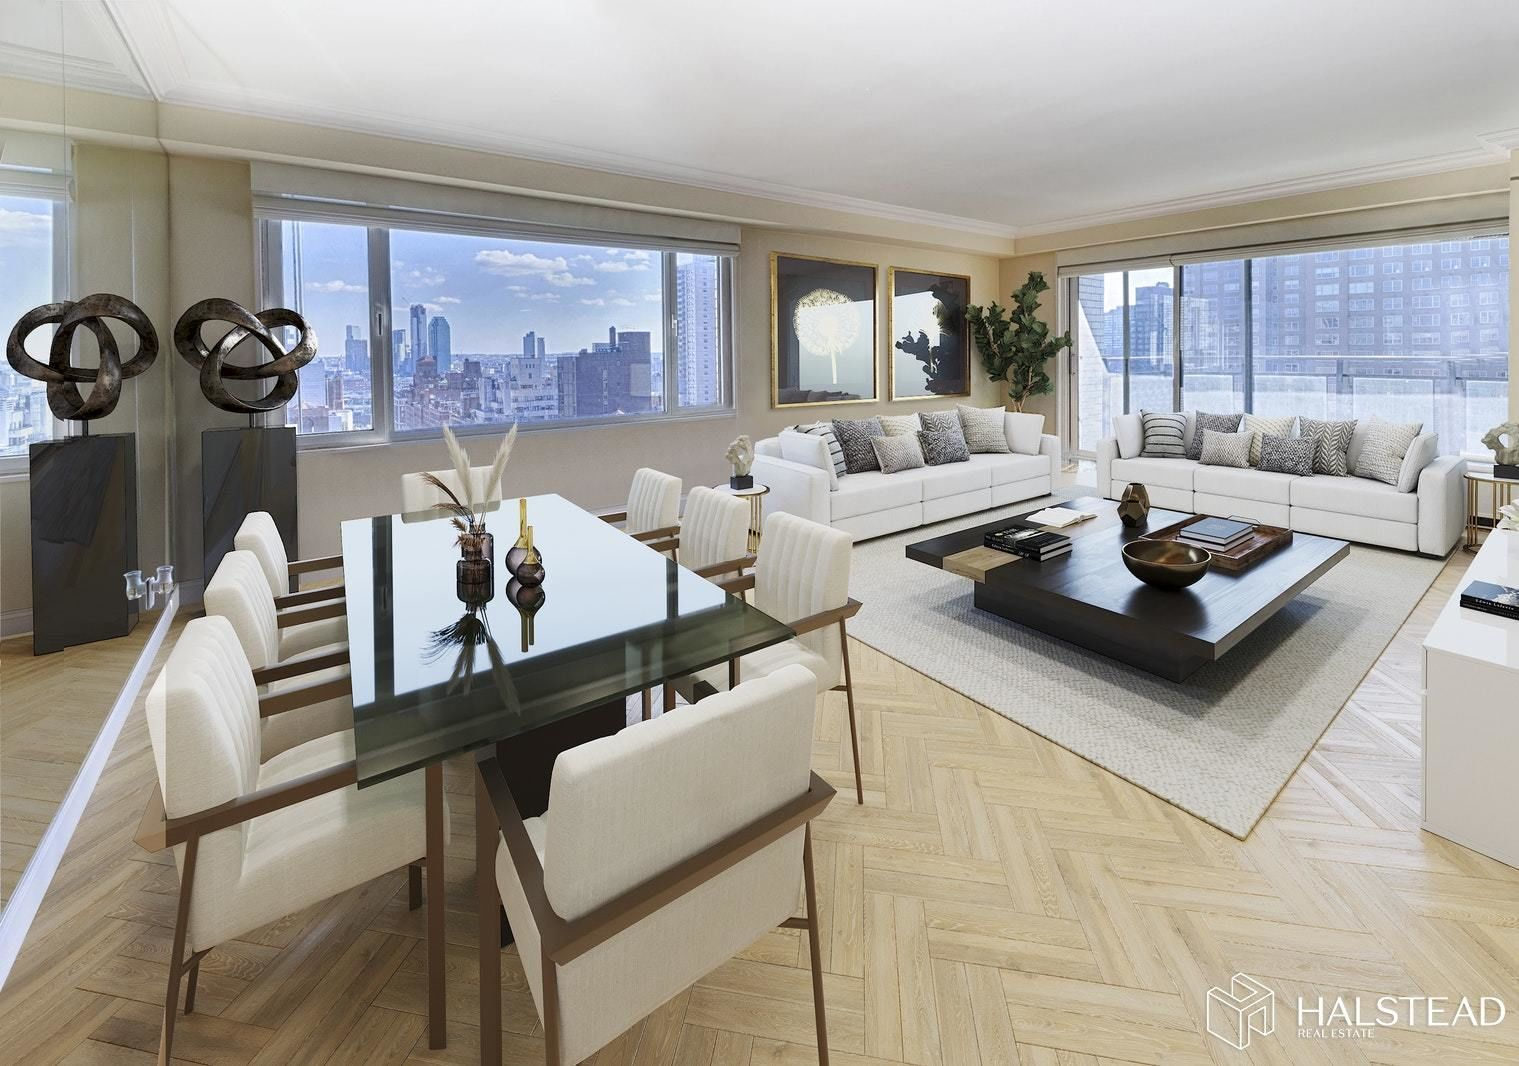 Apartment for sale at 303 East 57th Street, Apt 24B